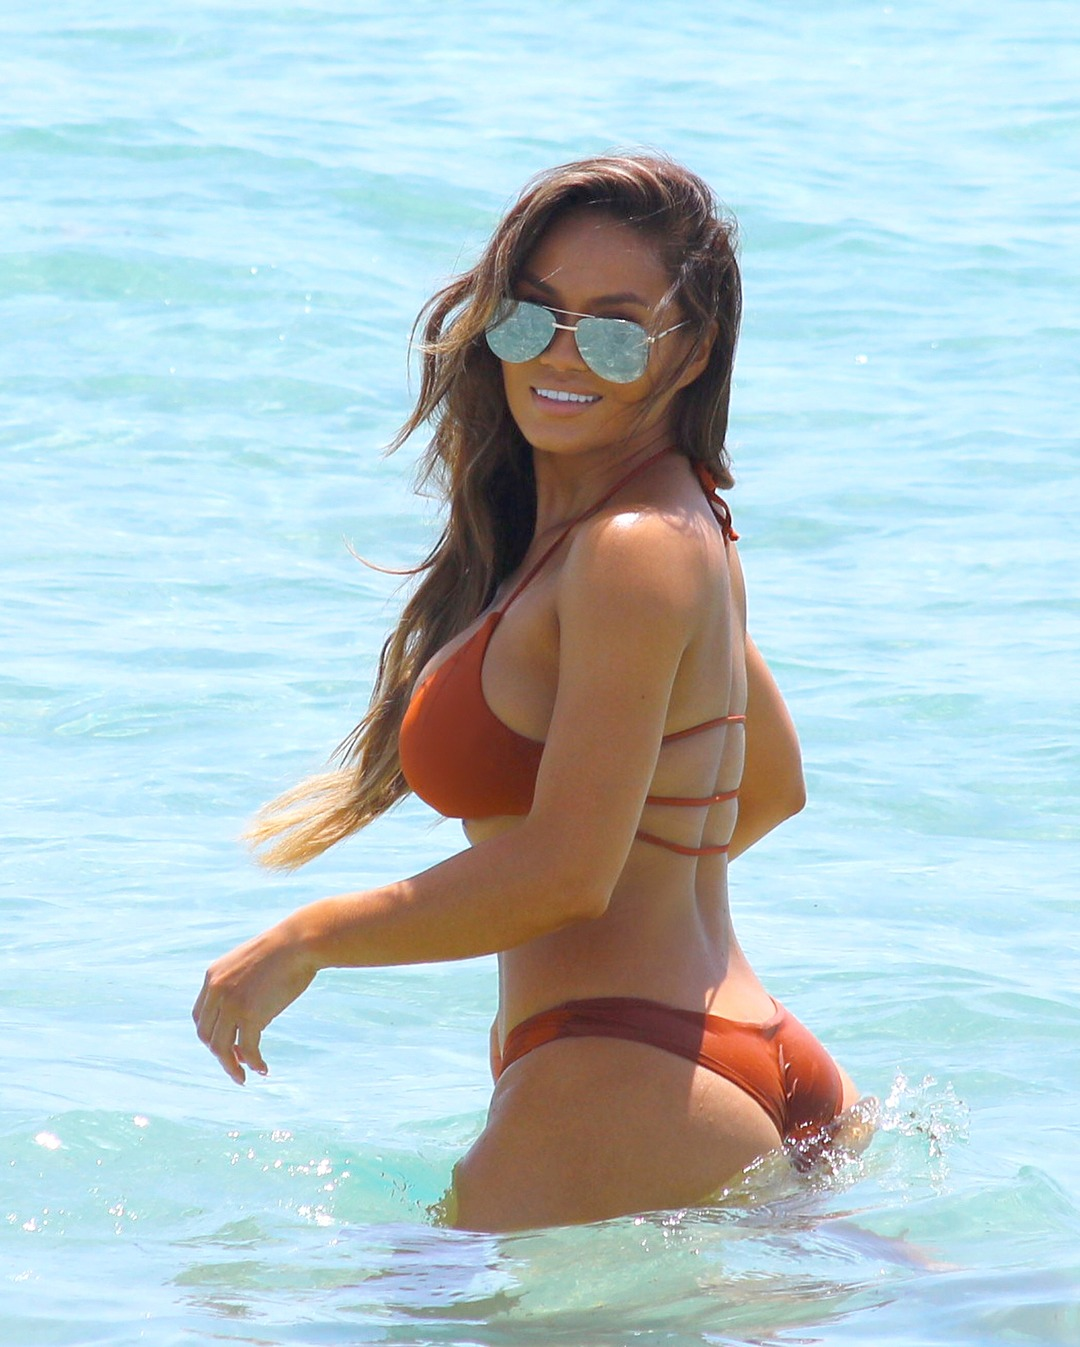 Daphne Joy looks hot in the brown bikini. She is showing off her curvaceous body taking a dip in the water.